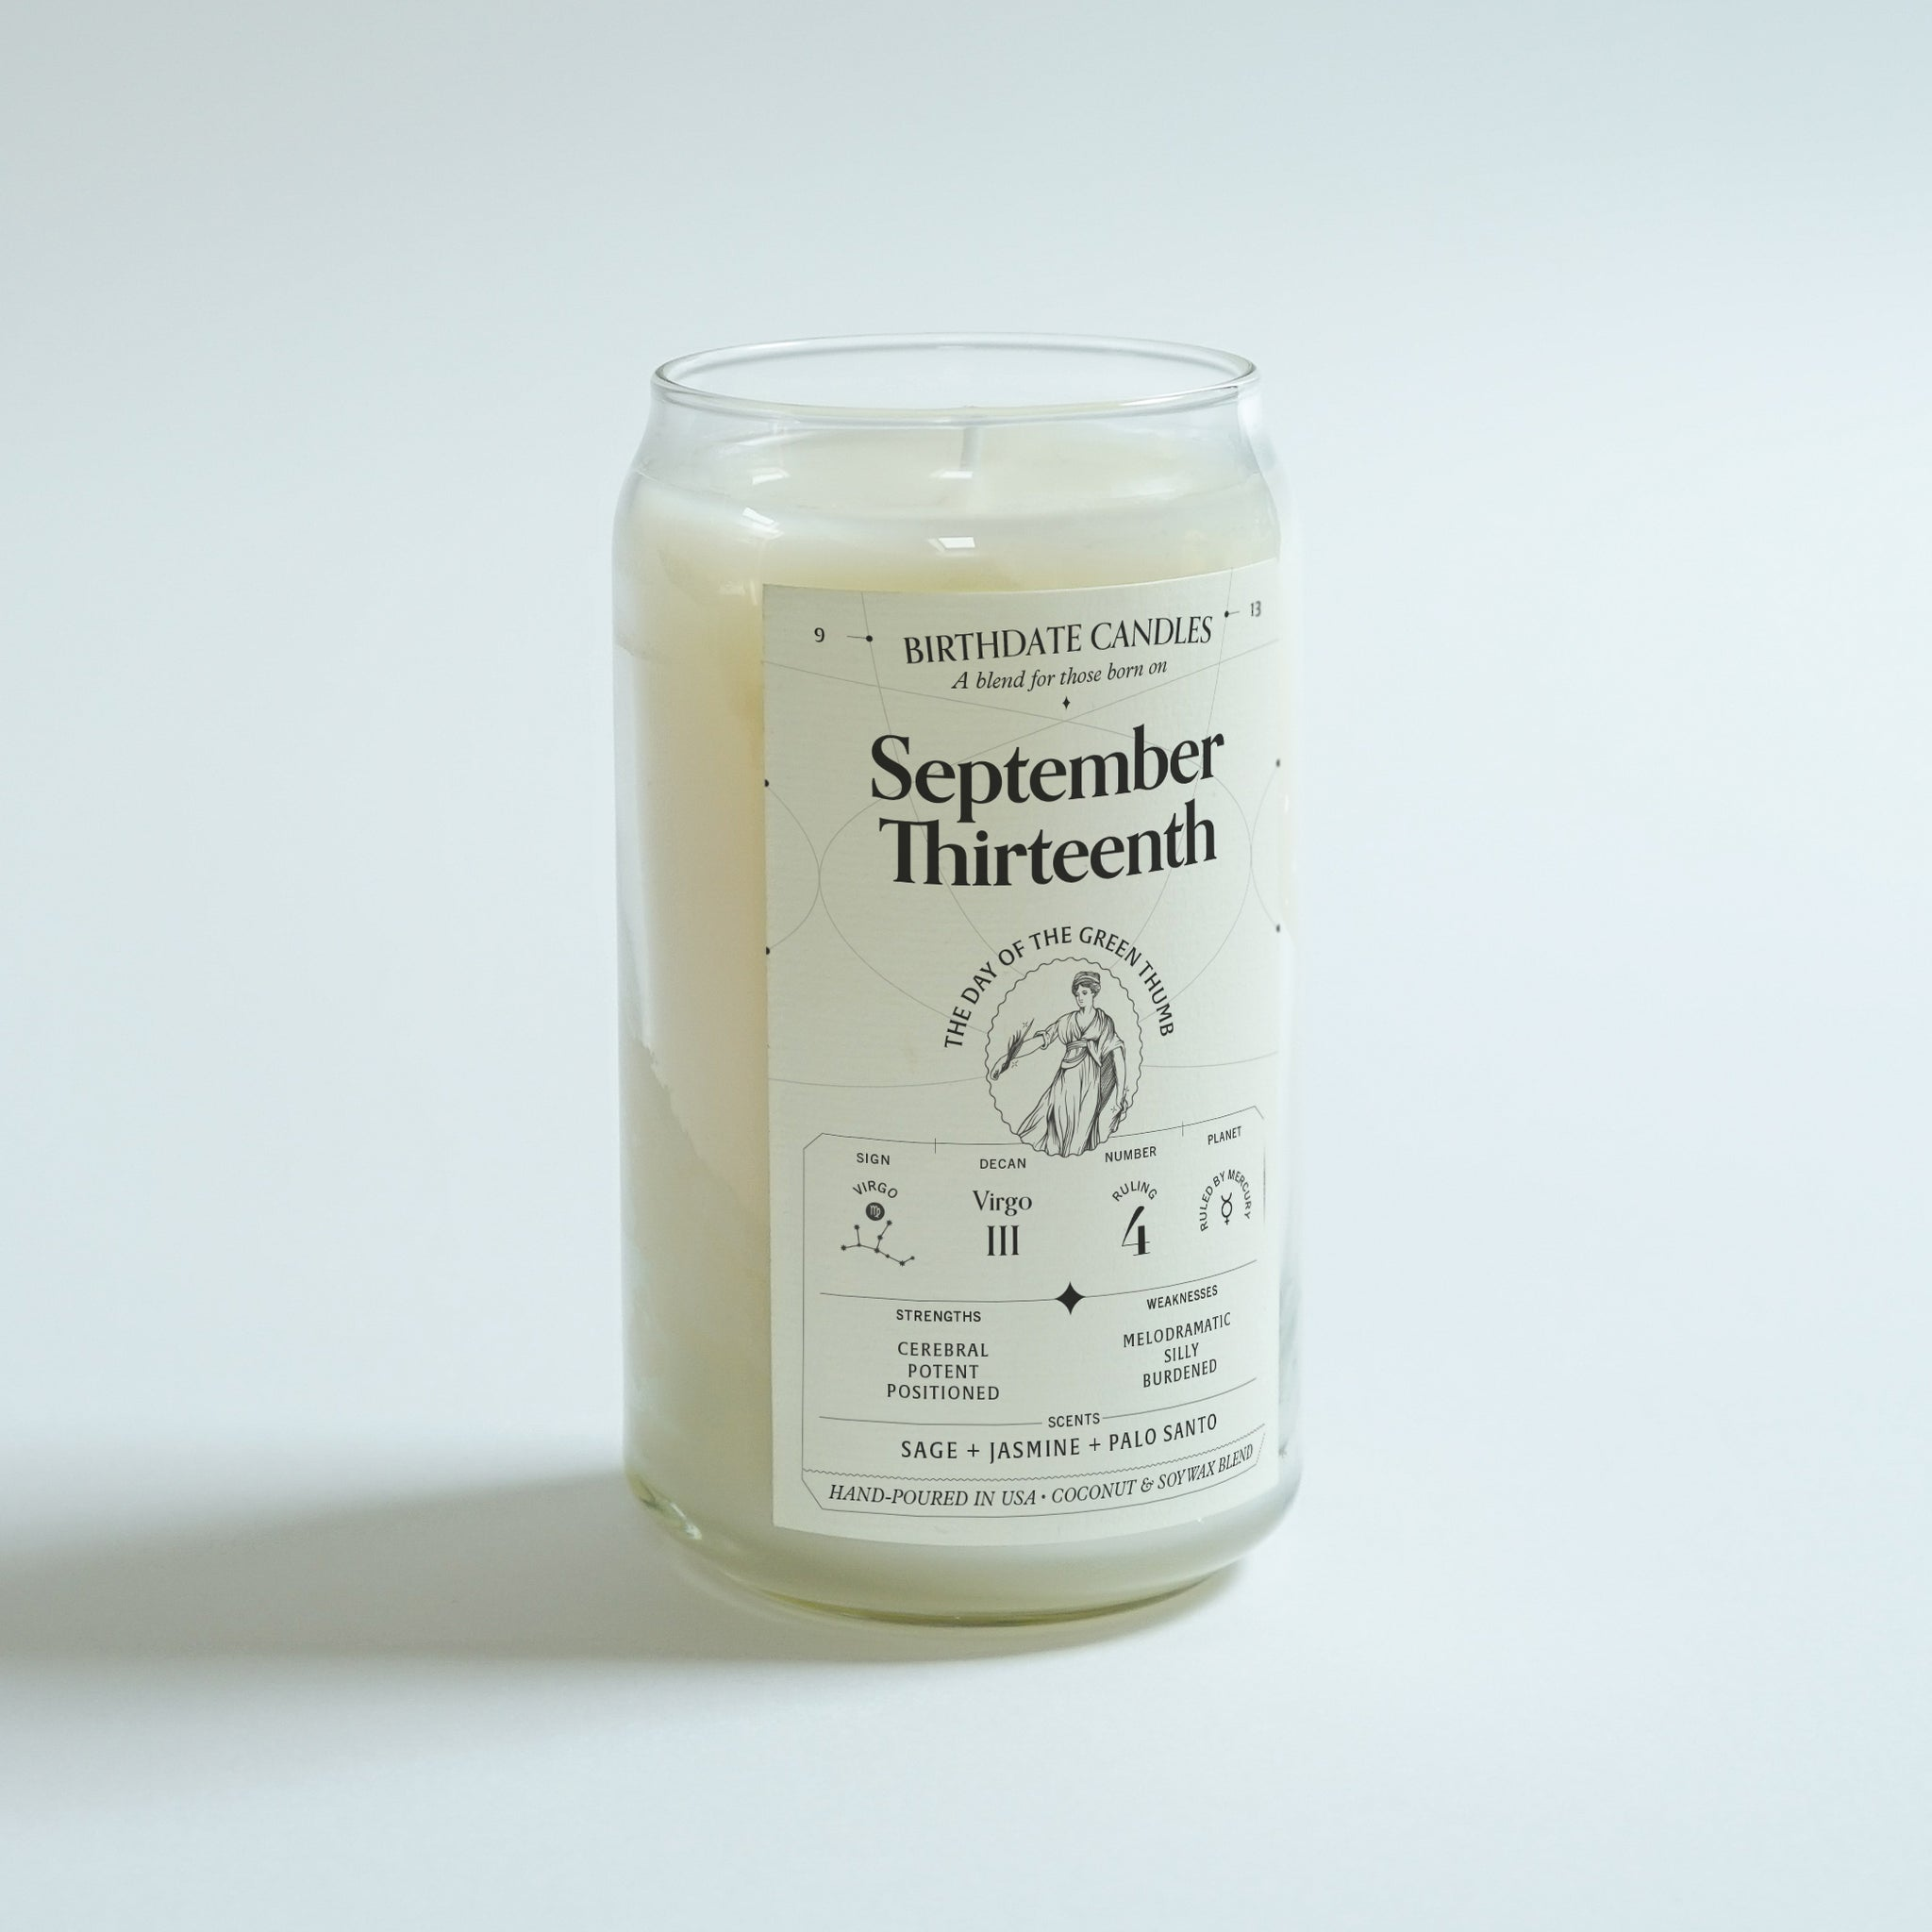 The September Thirteenth Candle